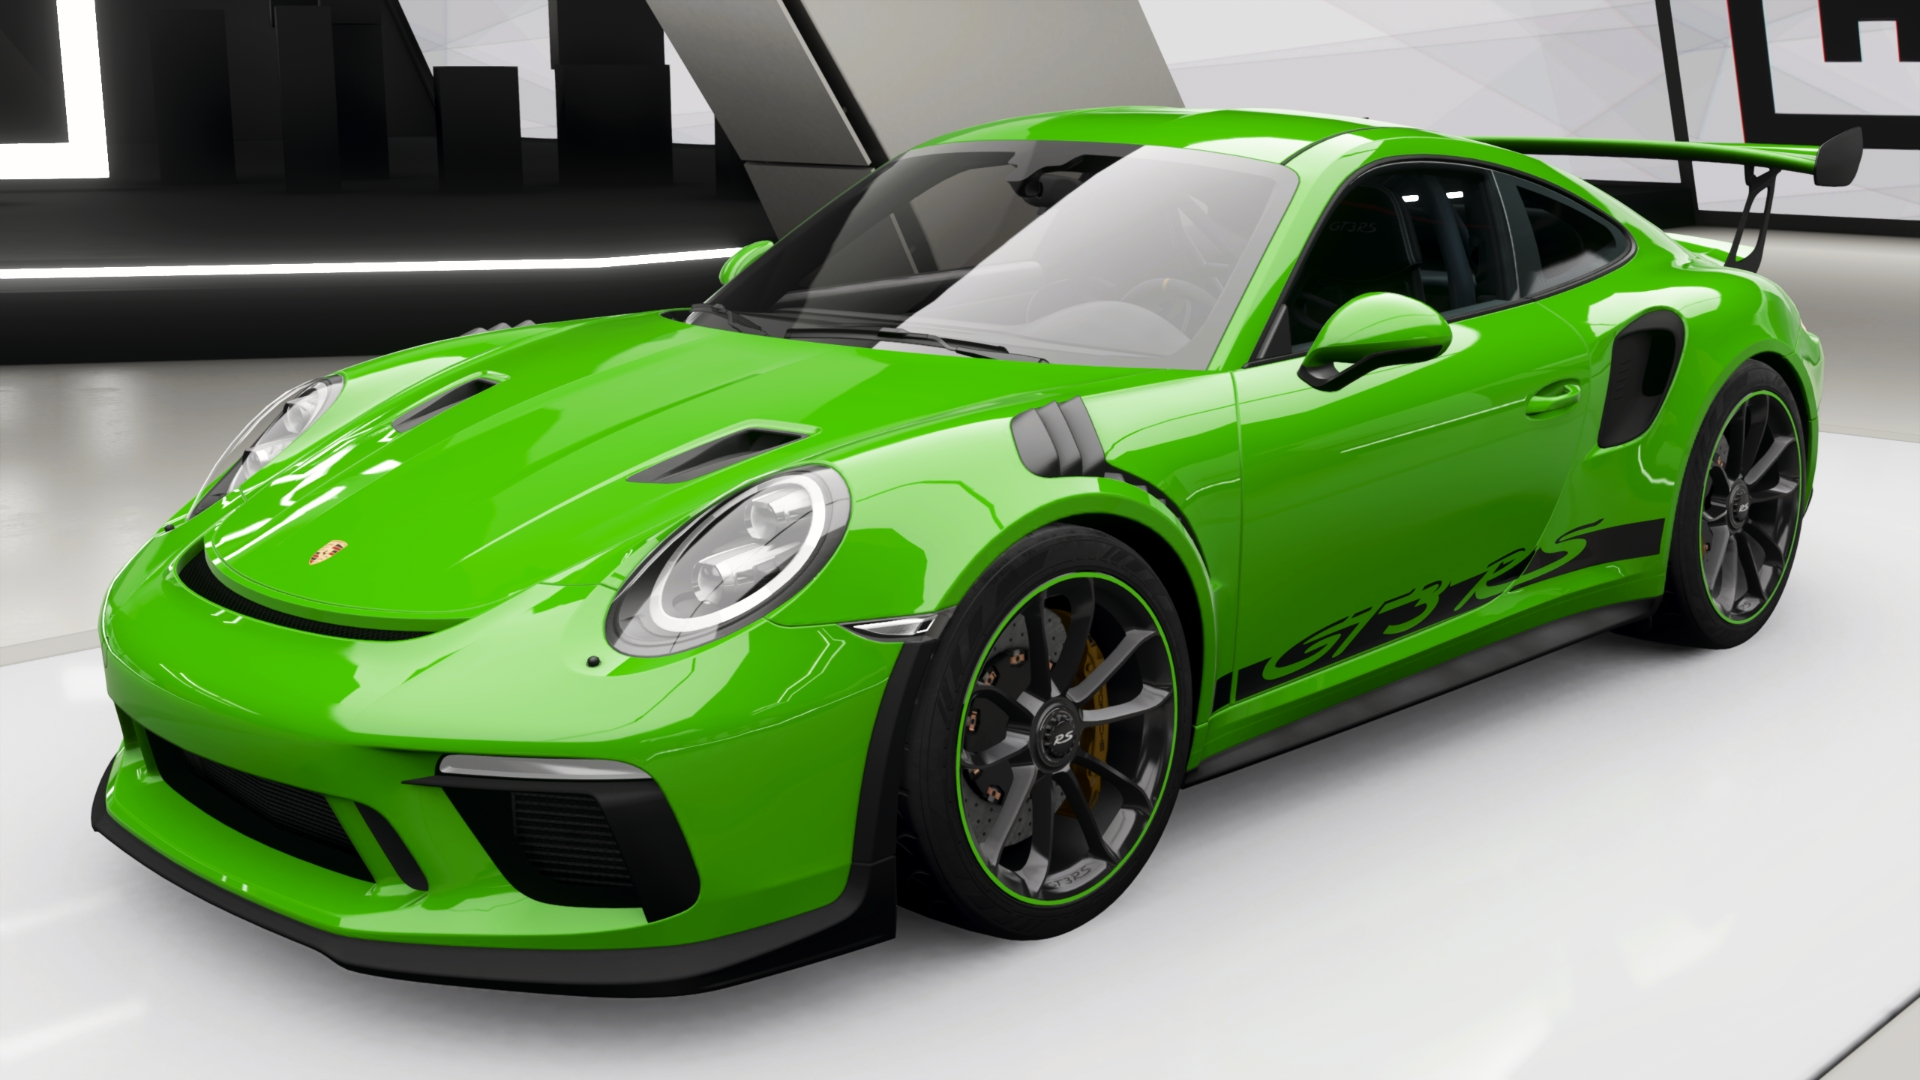 Porsche 911 GT3 RS (2019) | Forza Motorsport Wiki | FANDOM powered